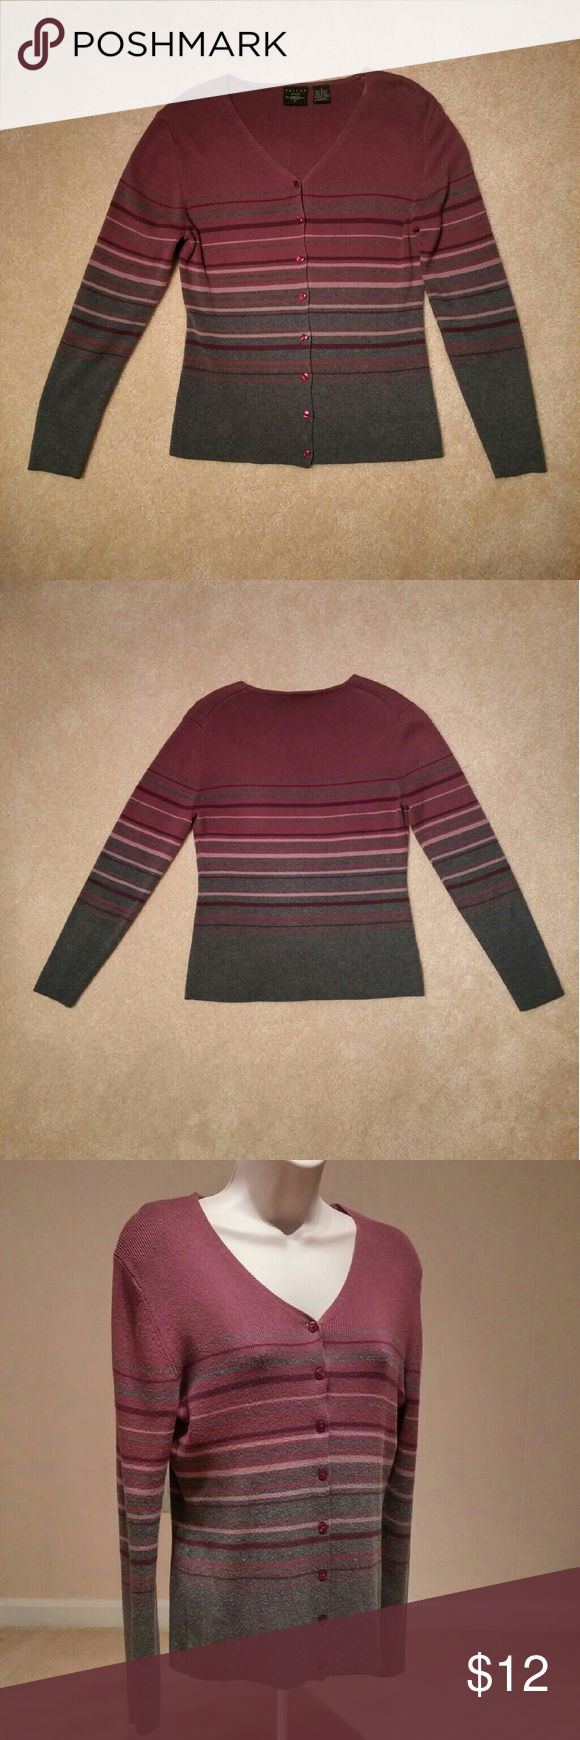 Heather Gray & Burgundy Striped Cardigan Sweater By Tailor B. Moss. 55% Acrylic/45% Cotton. B. Moss Sweaters Cardigans